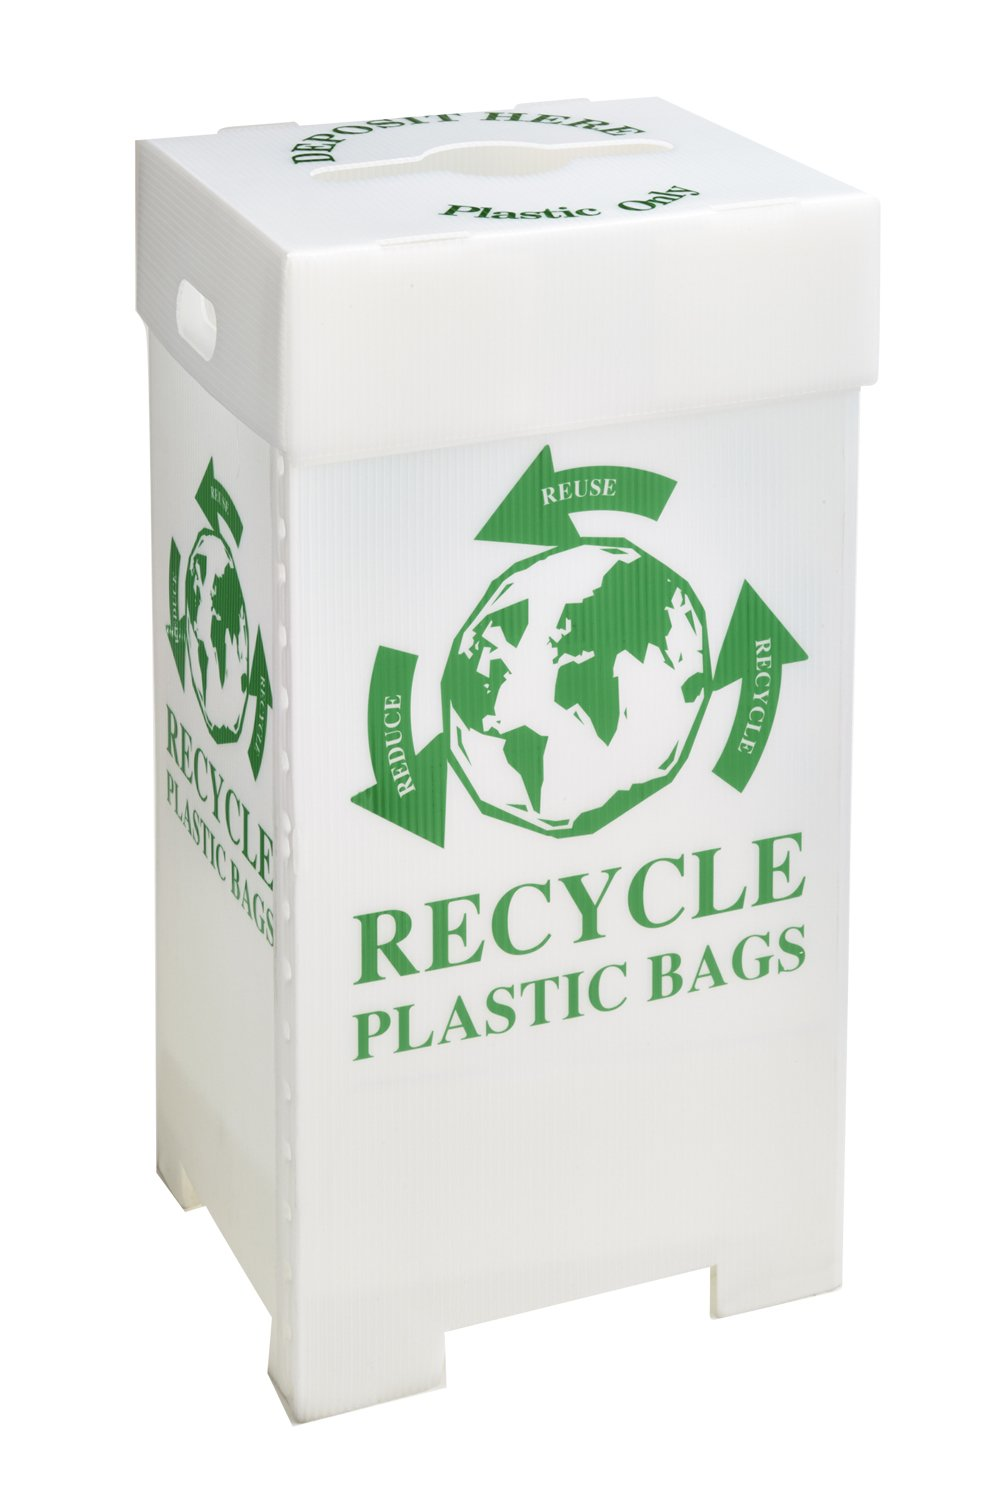 Recycling Container (Plastic Bags) 44 Gallon, 20.25''L x 17''W x 38''H (Pack of 3) DVP#225432